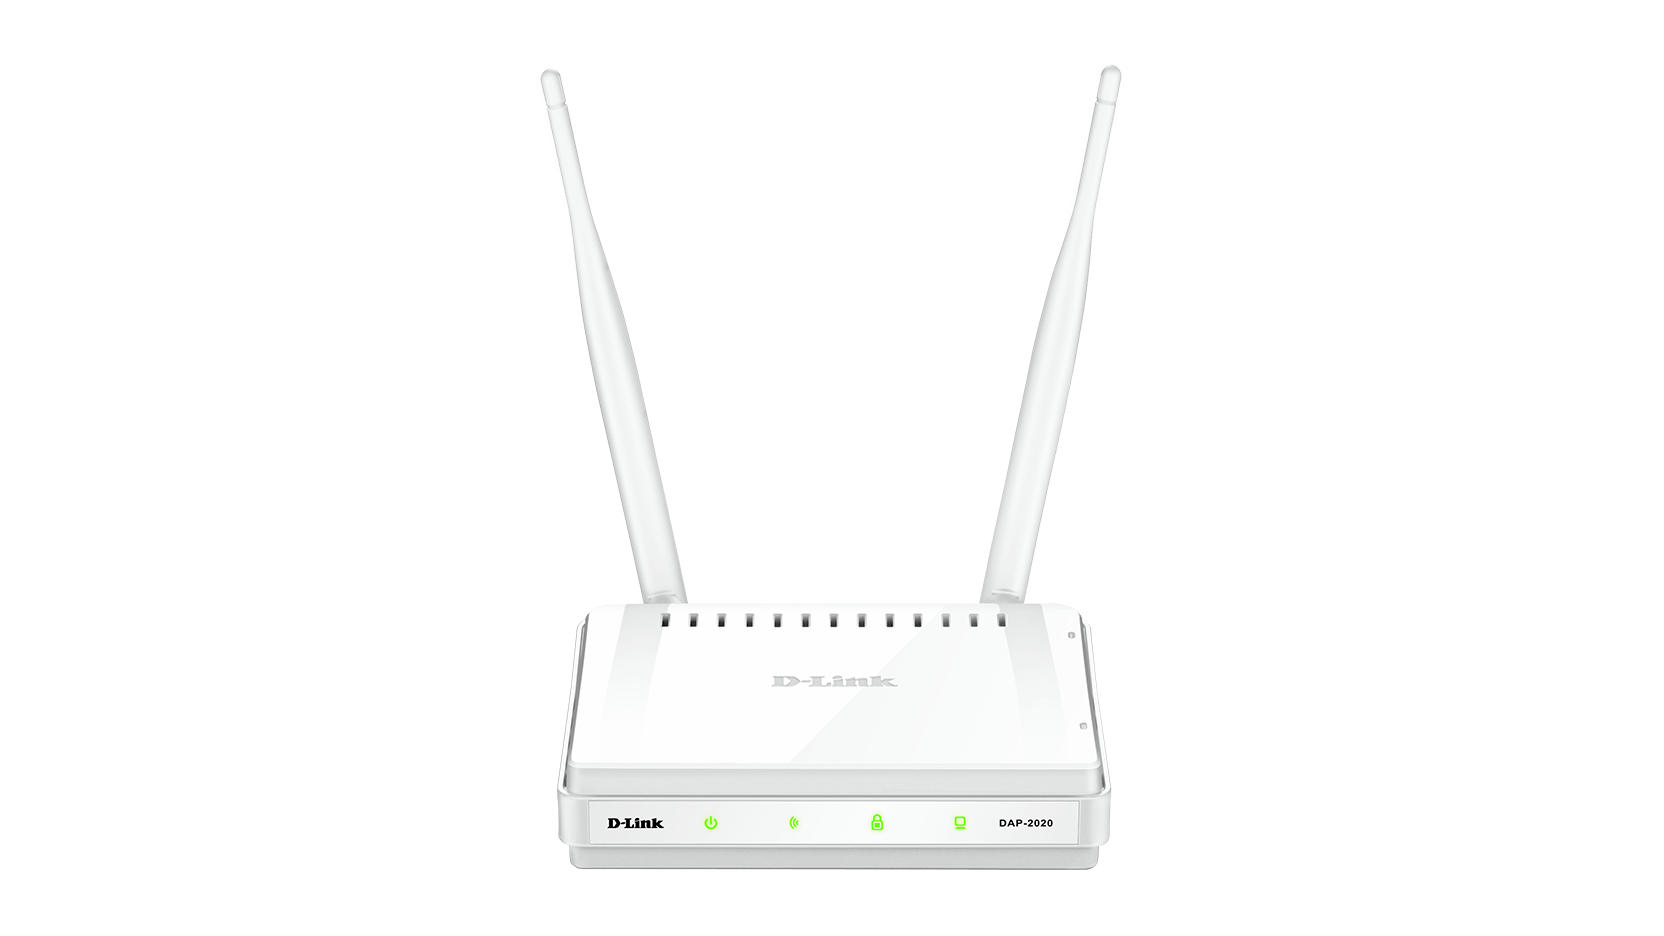 Best Dap 2020 DAP 2680 Wireless AC1750 Wave 2 Dual Band PoE Access Point | D Link UK